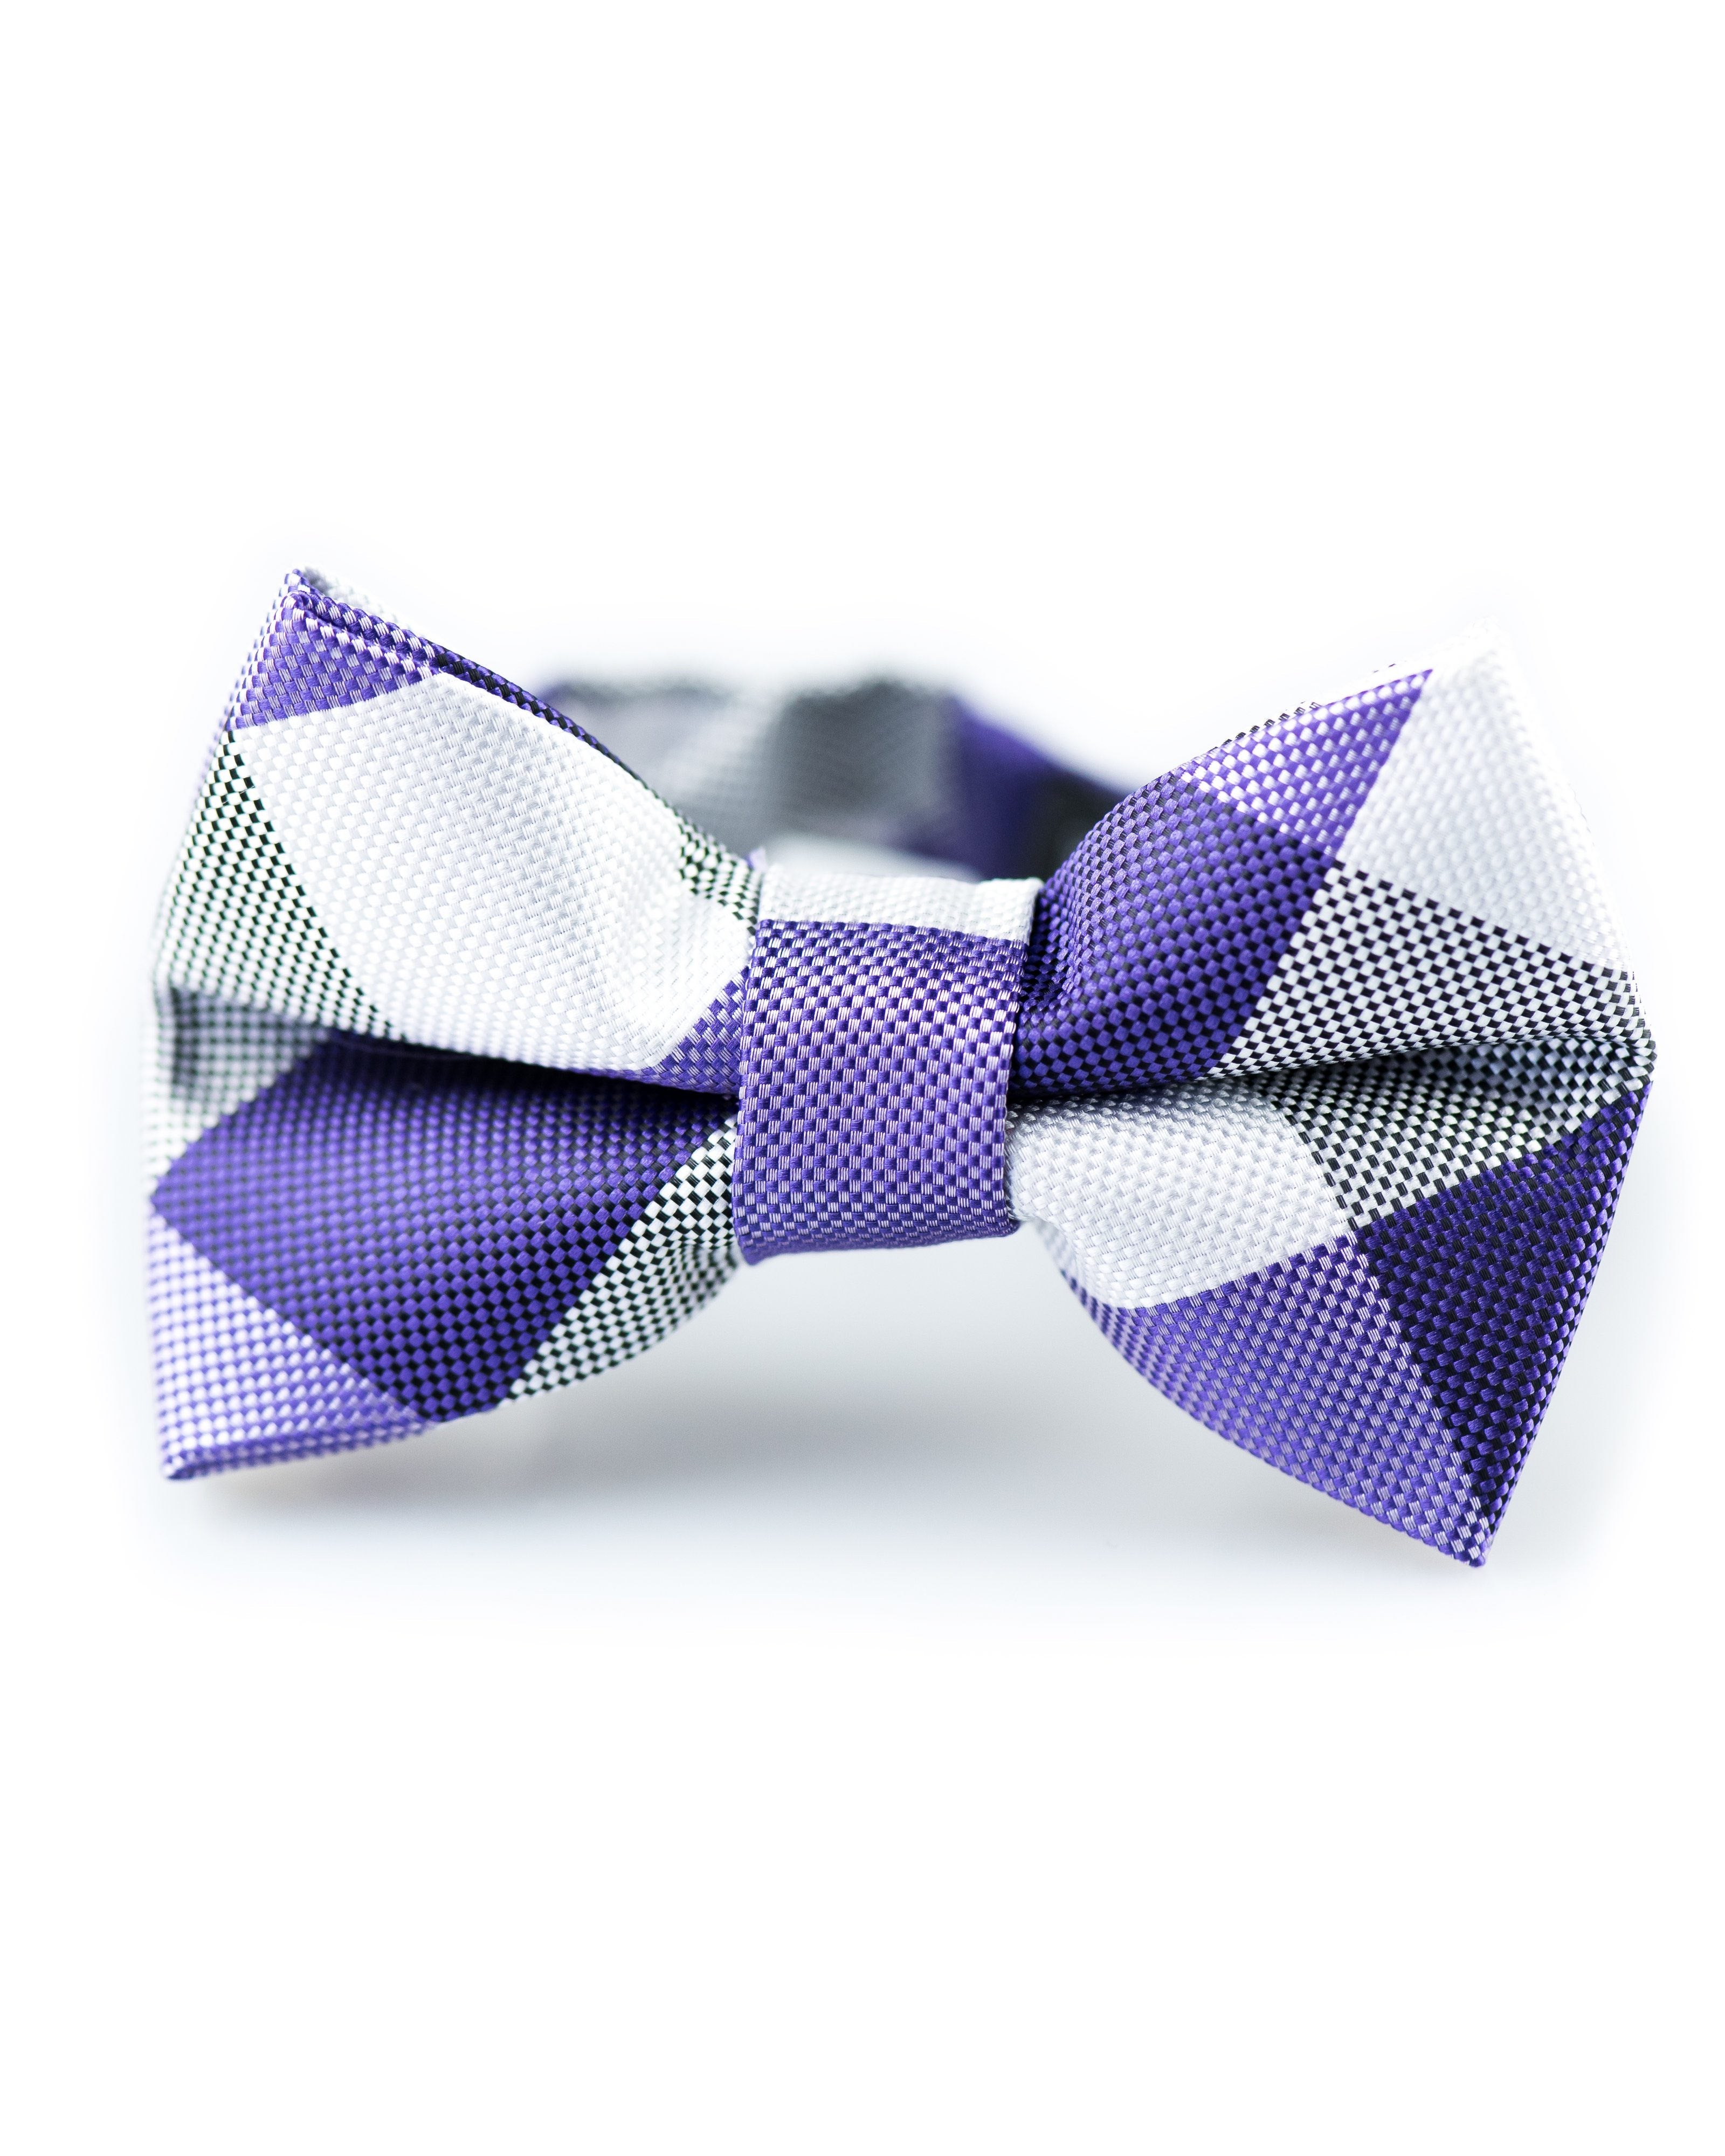 purple-and-white-check-bow-tie.jpg